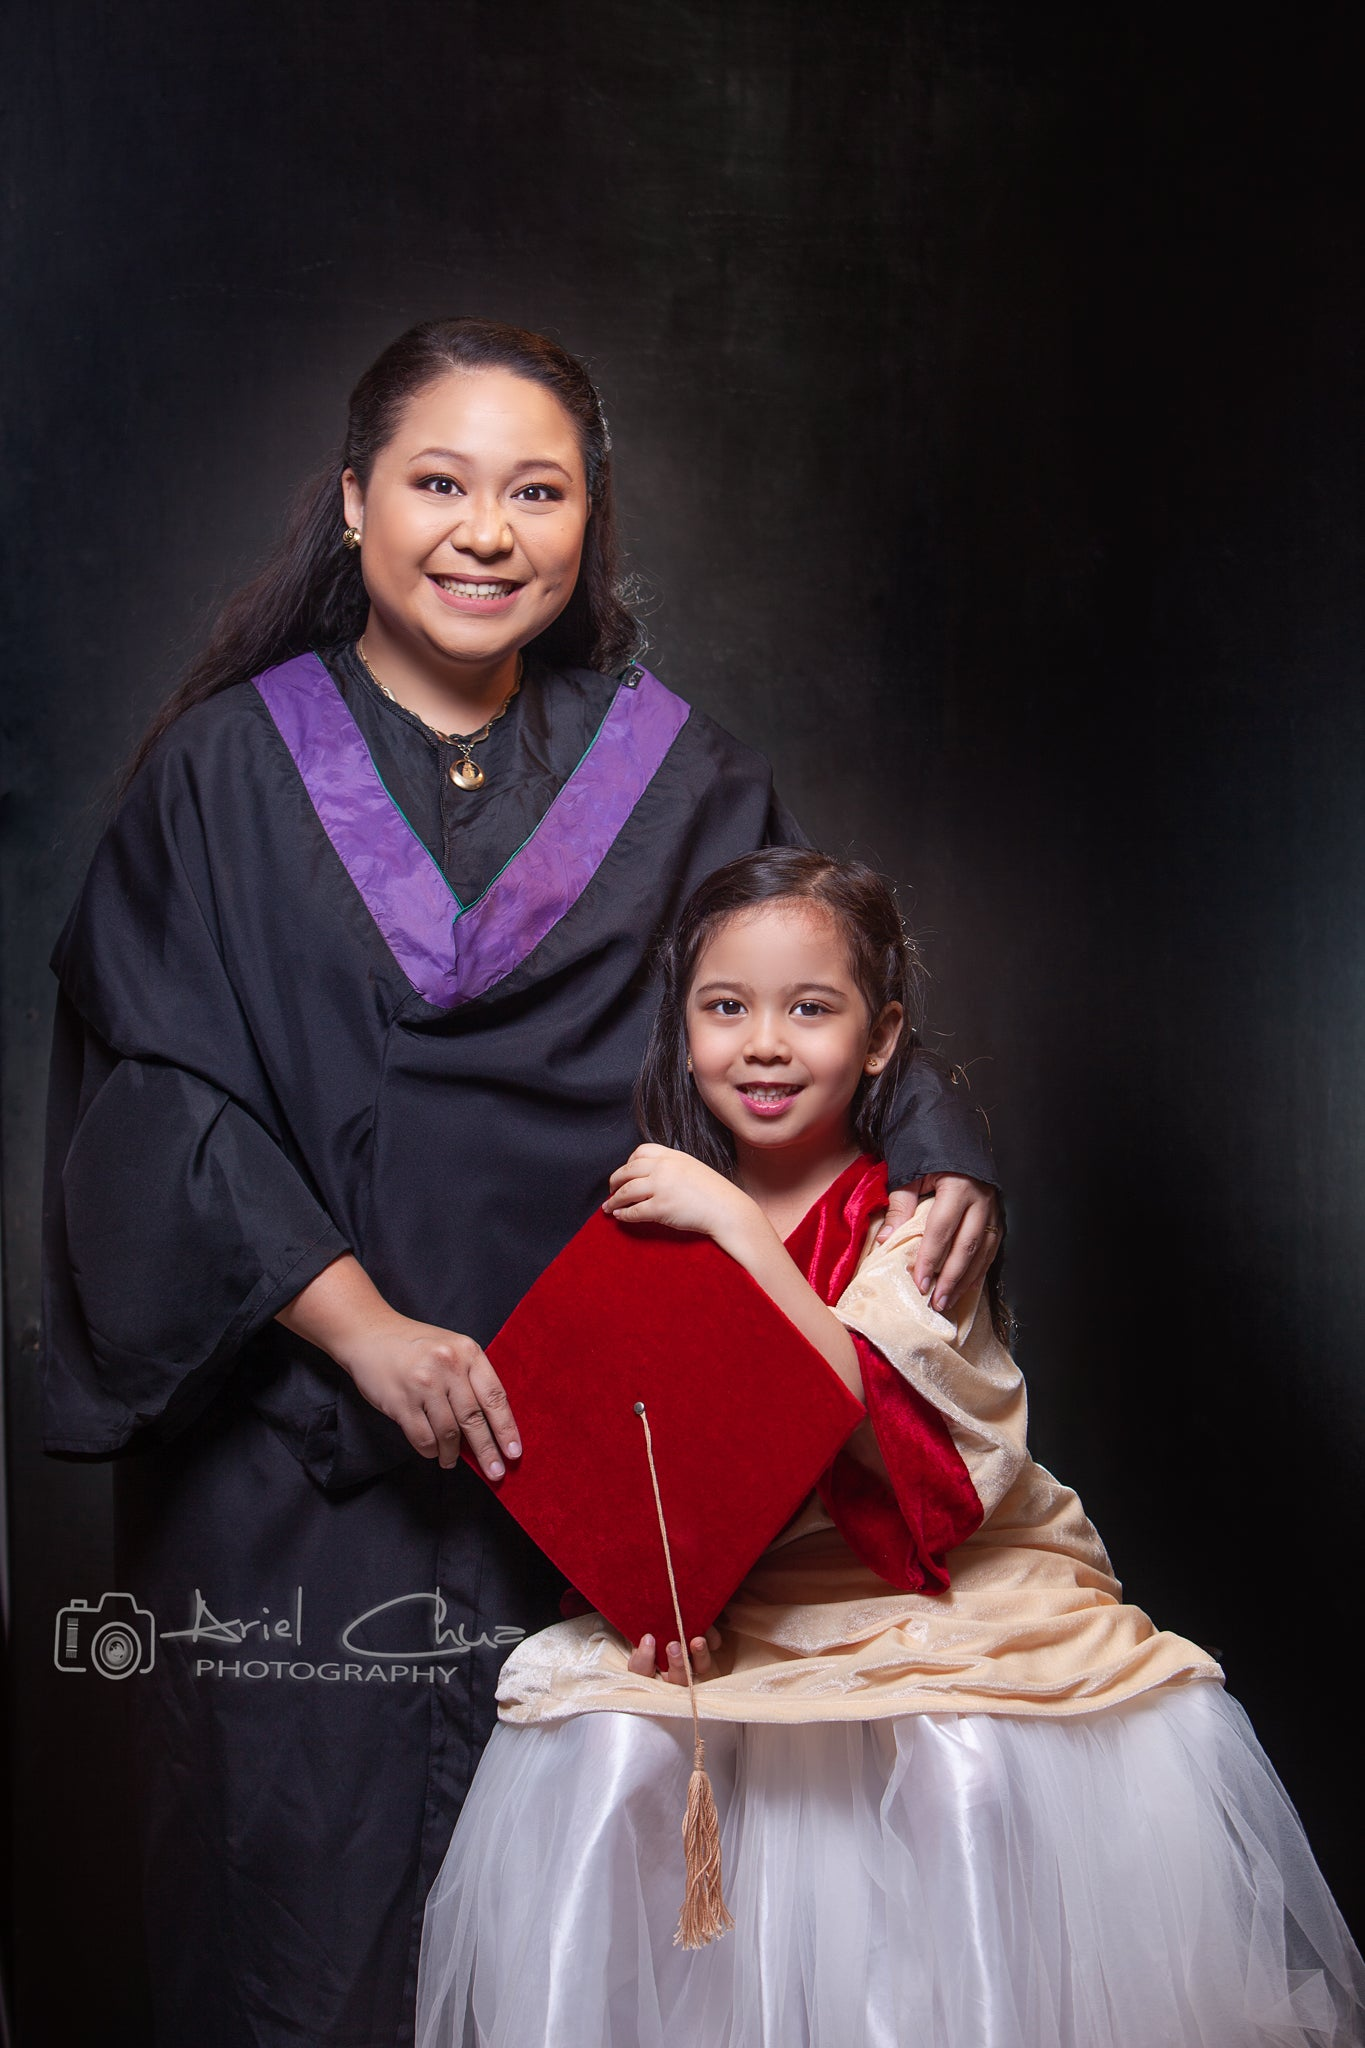 Graduation Studio Portraiture